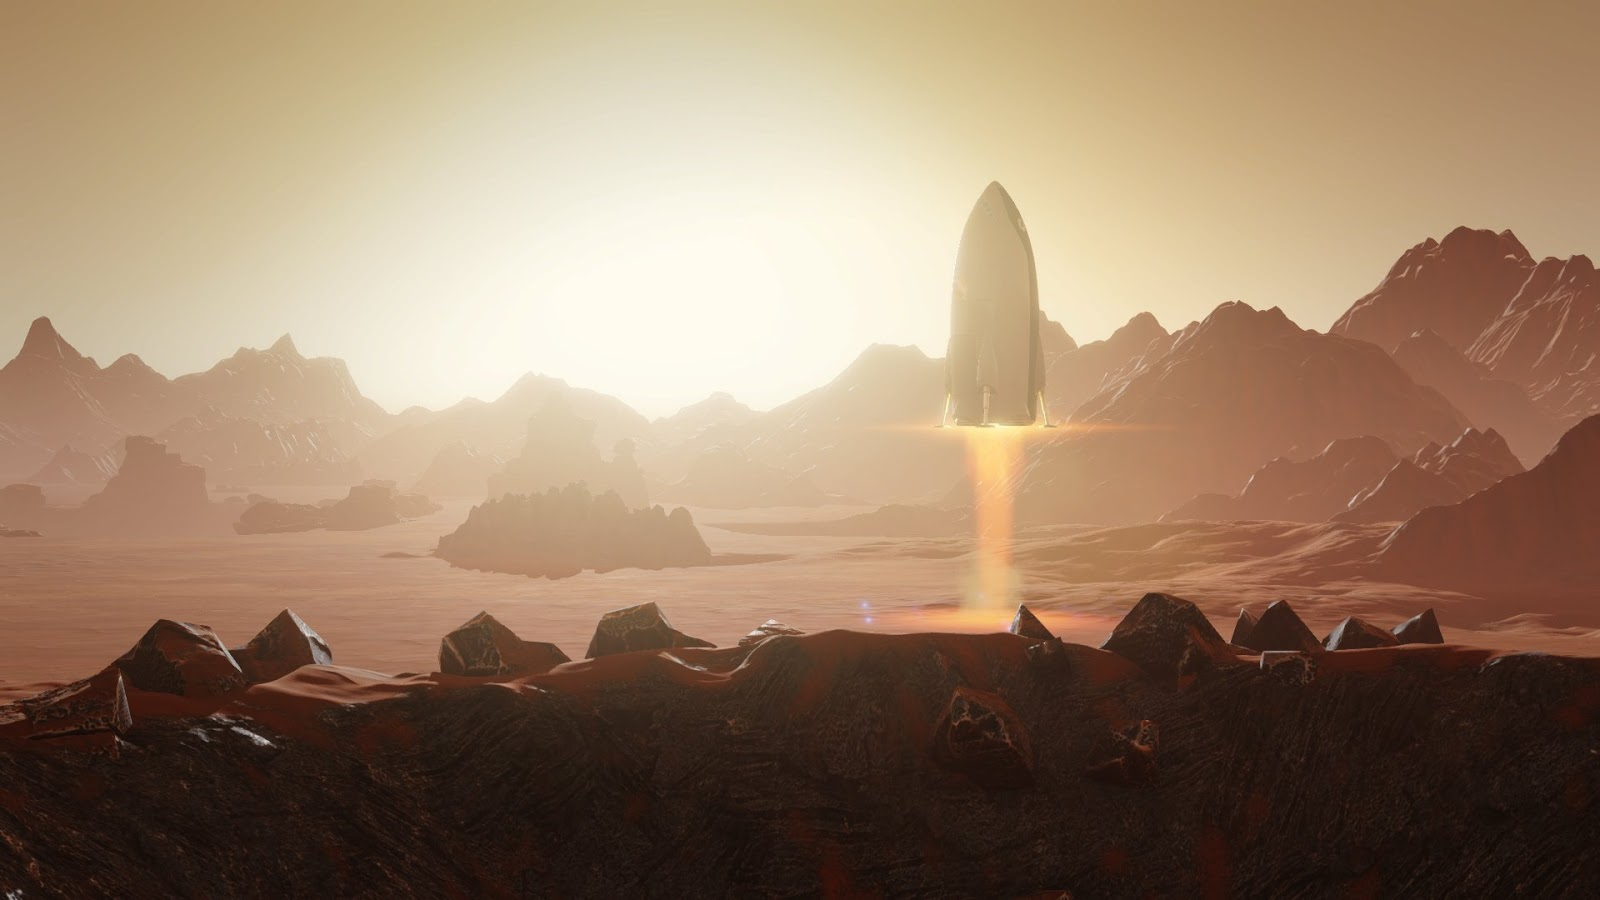 Spaceship landing on Mars from Surviving Mars game